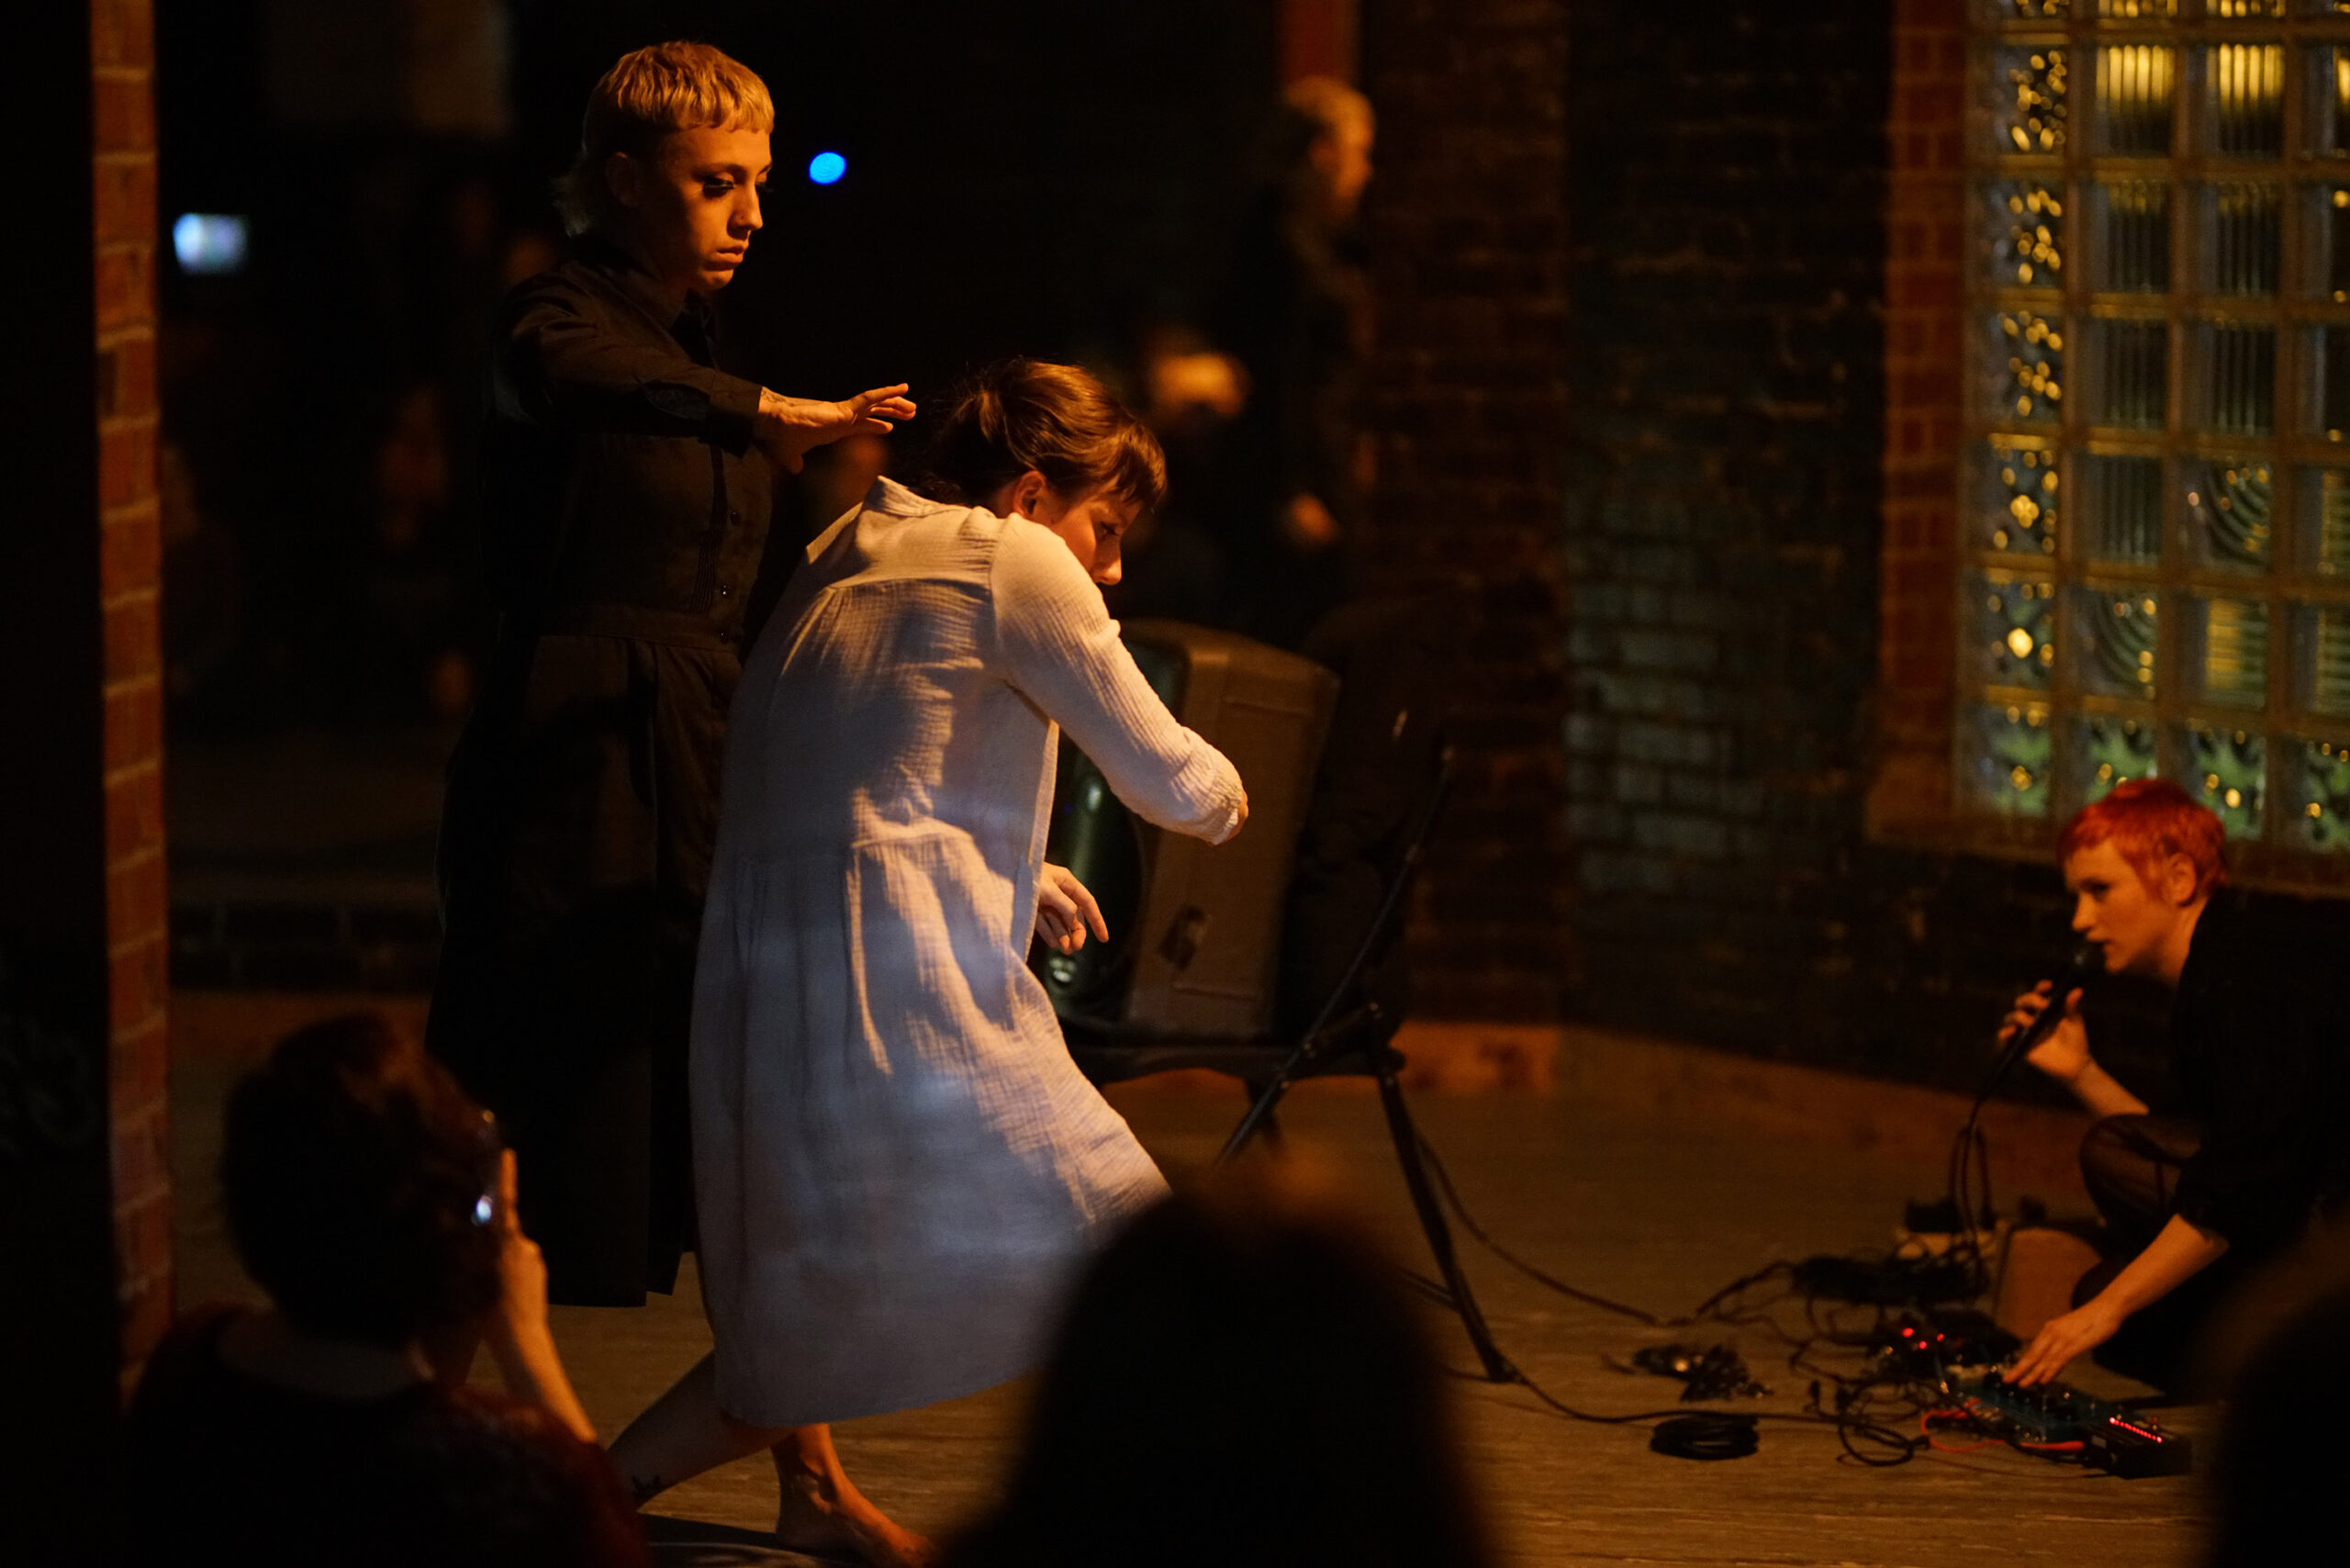 Three artists take part in performance art in a dark space. One person wears white and the other two wear black. One of the artists in black speaks into a microphone